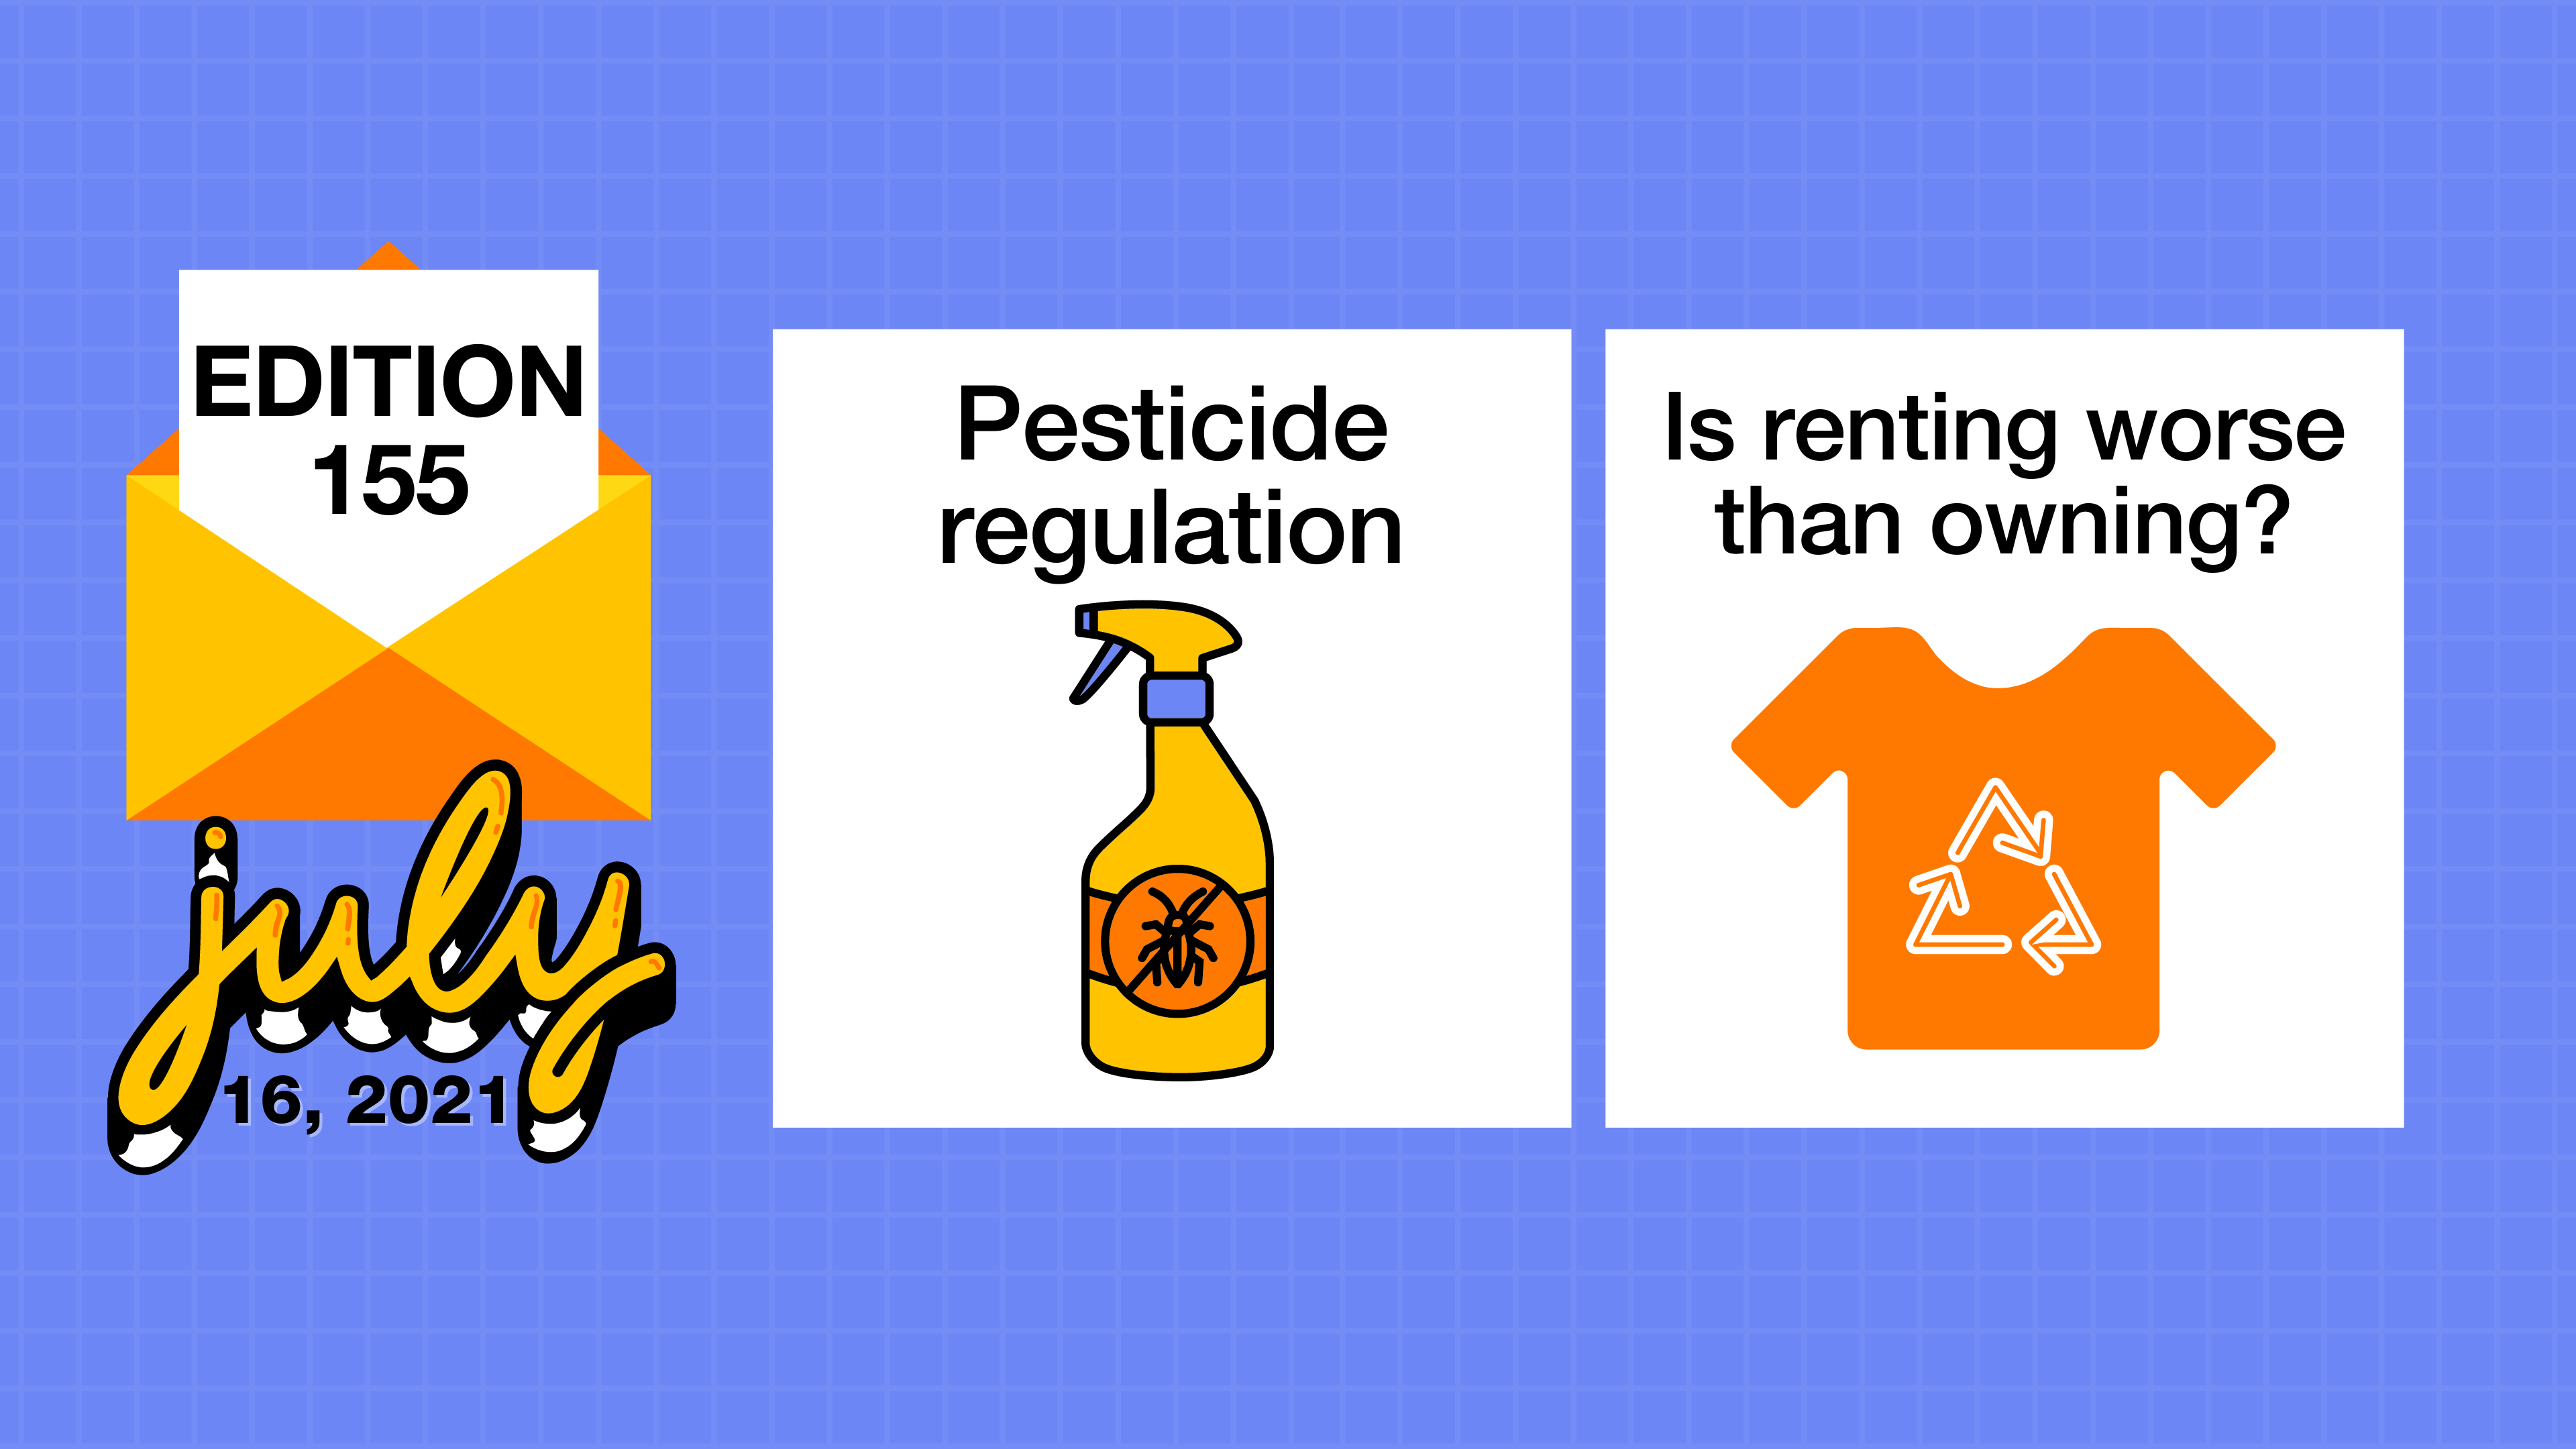 Questionably regulated pesticides and not so eco-friendly fashion